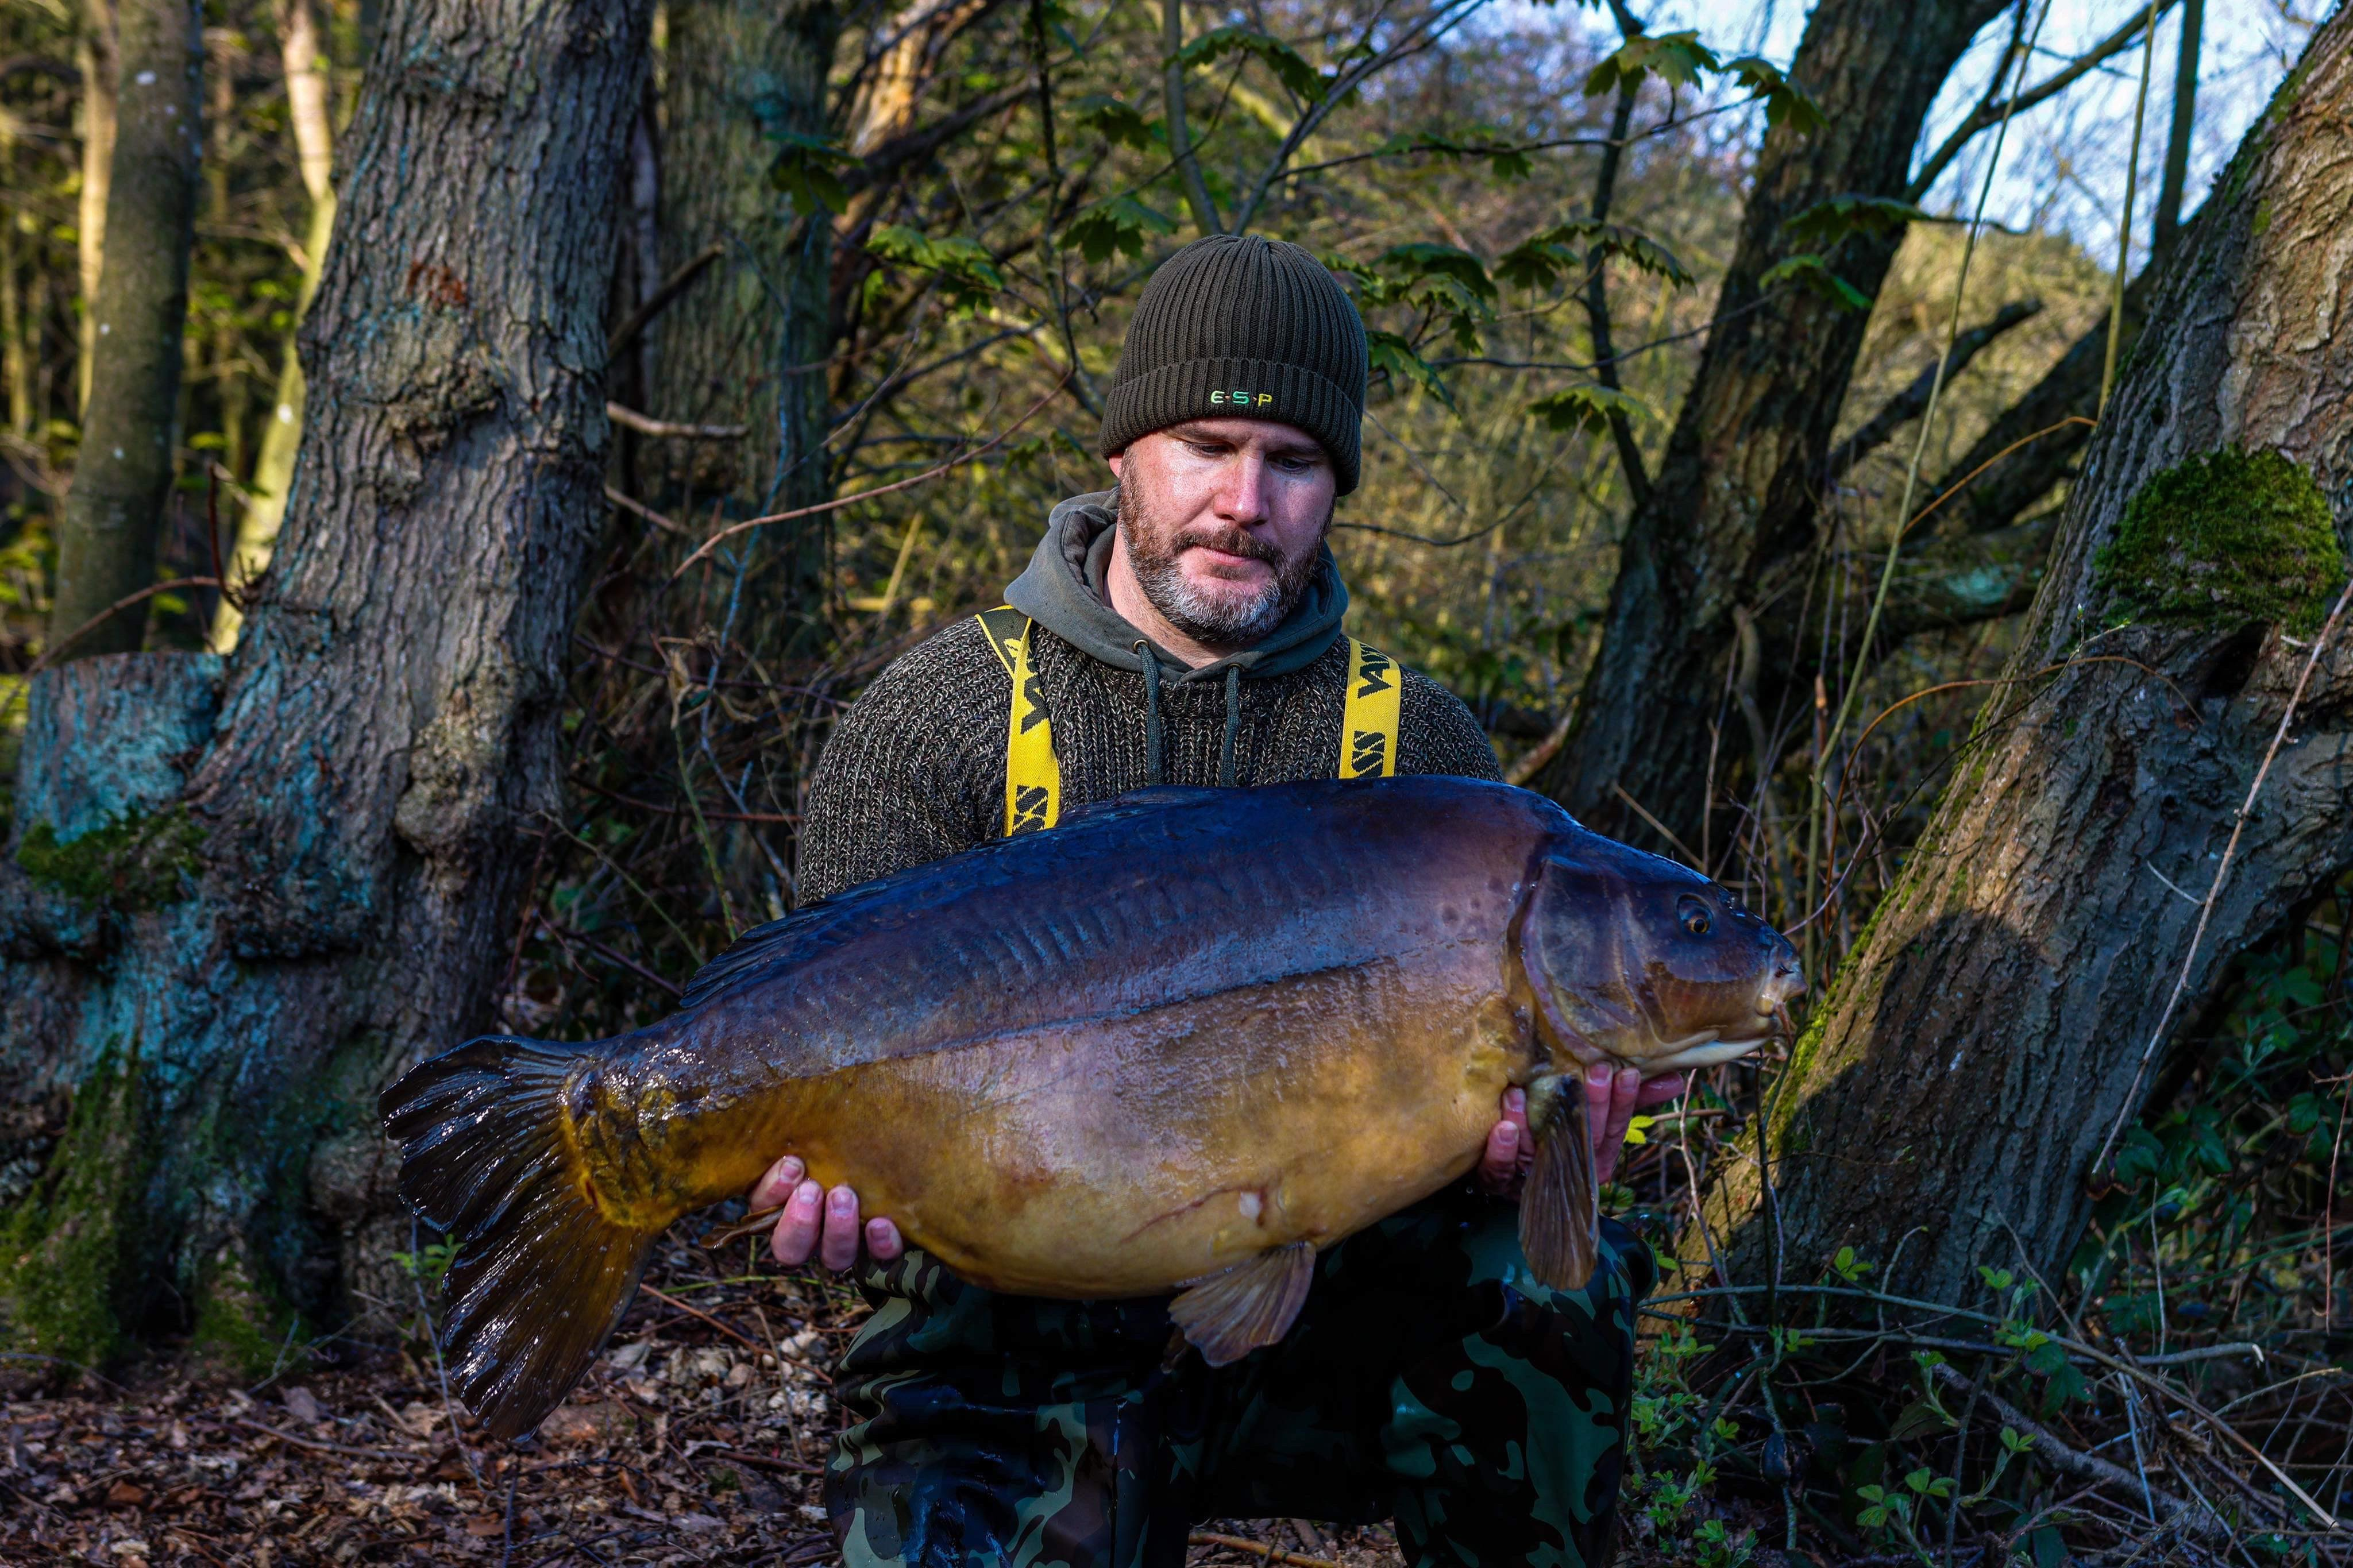 42-08 'The Scar' caught on